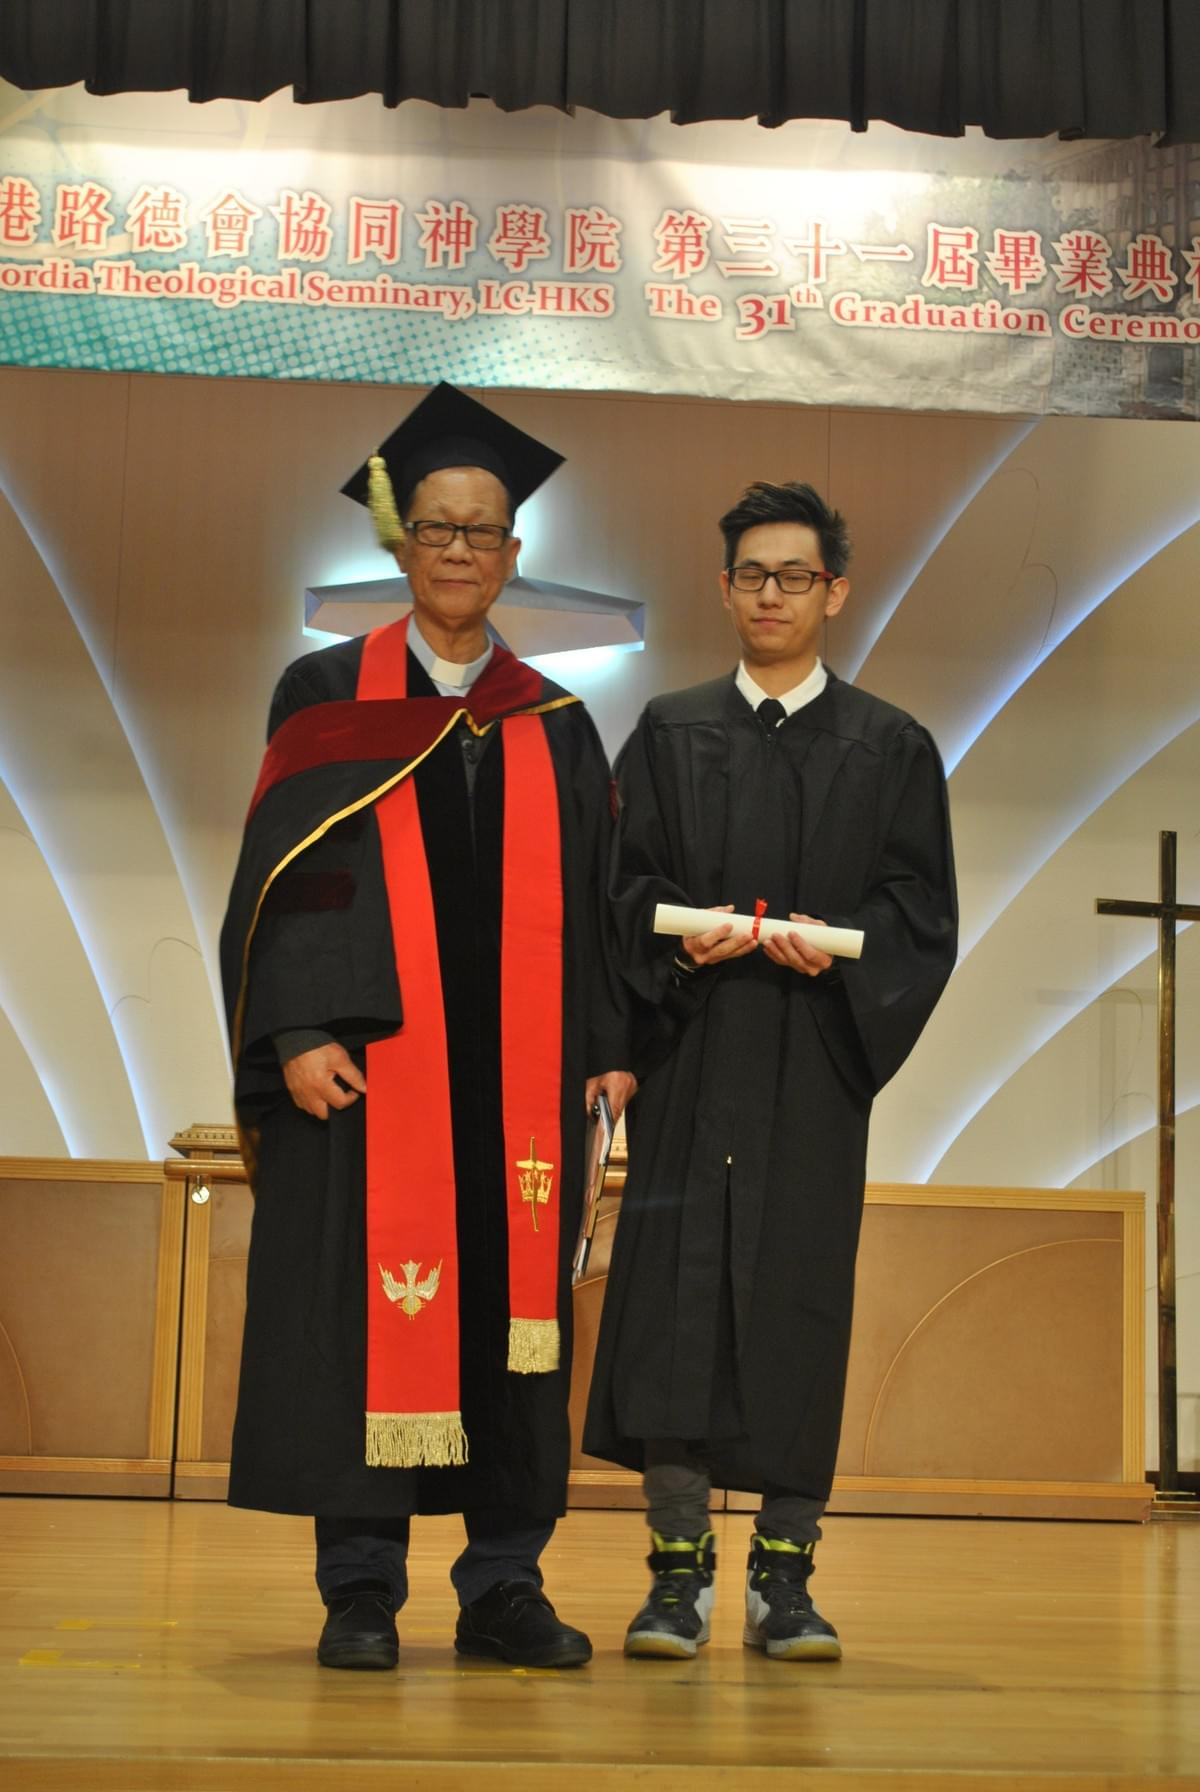 Rev. Dr. Stephen IP,CTS President, and Mr. YEUNG Chi Ming [Associate in Christian Ministry]